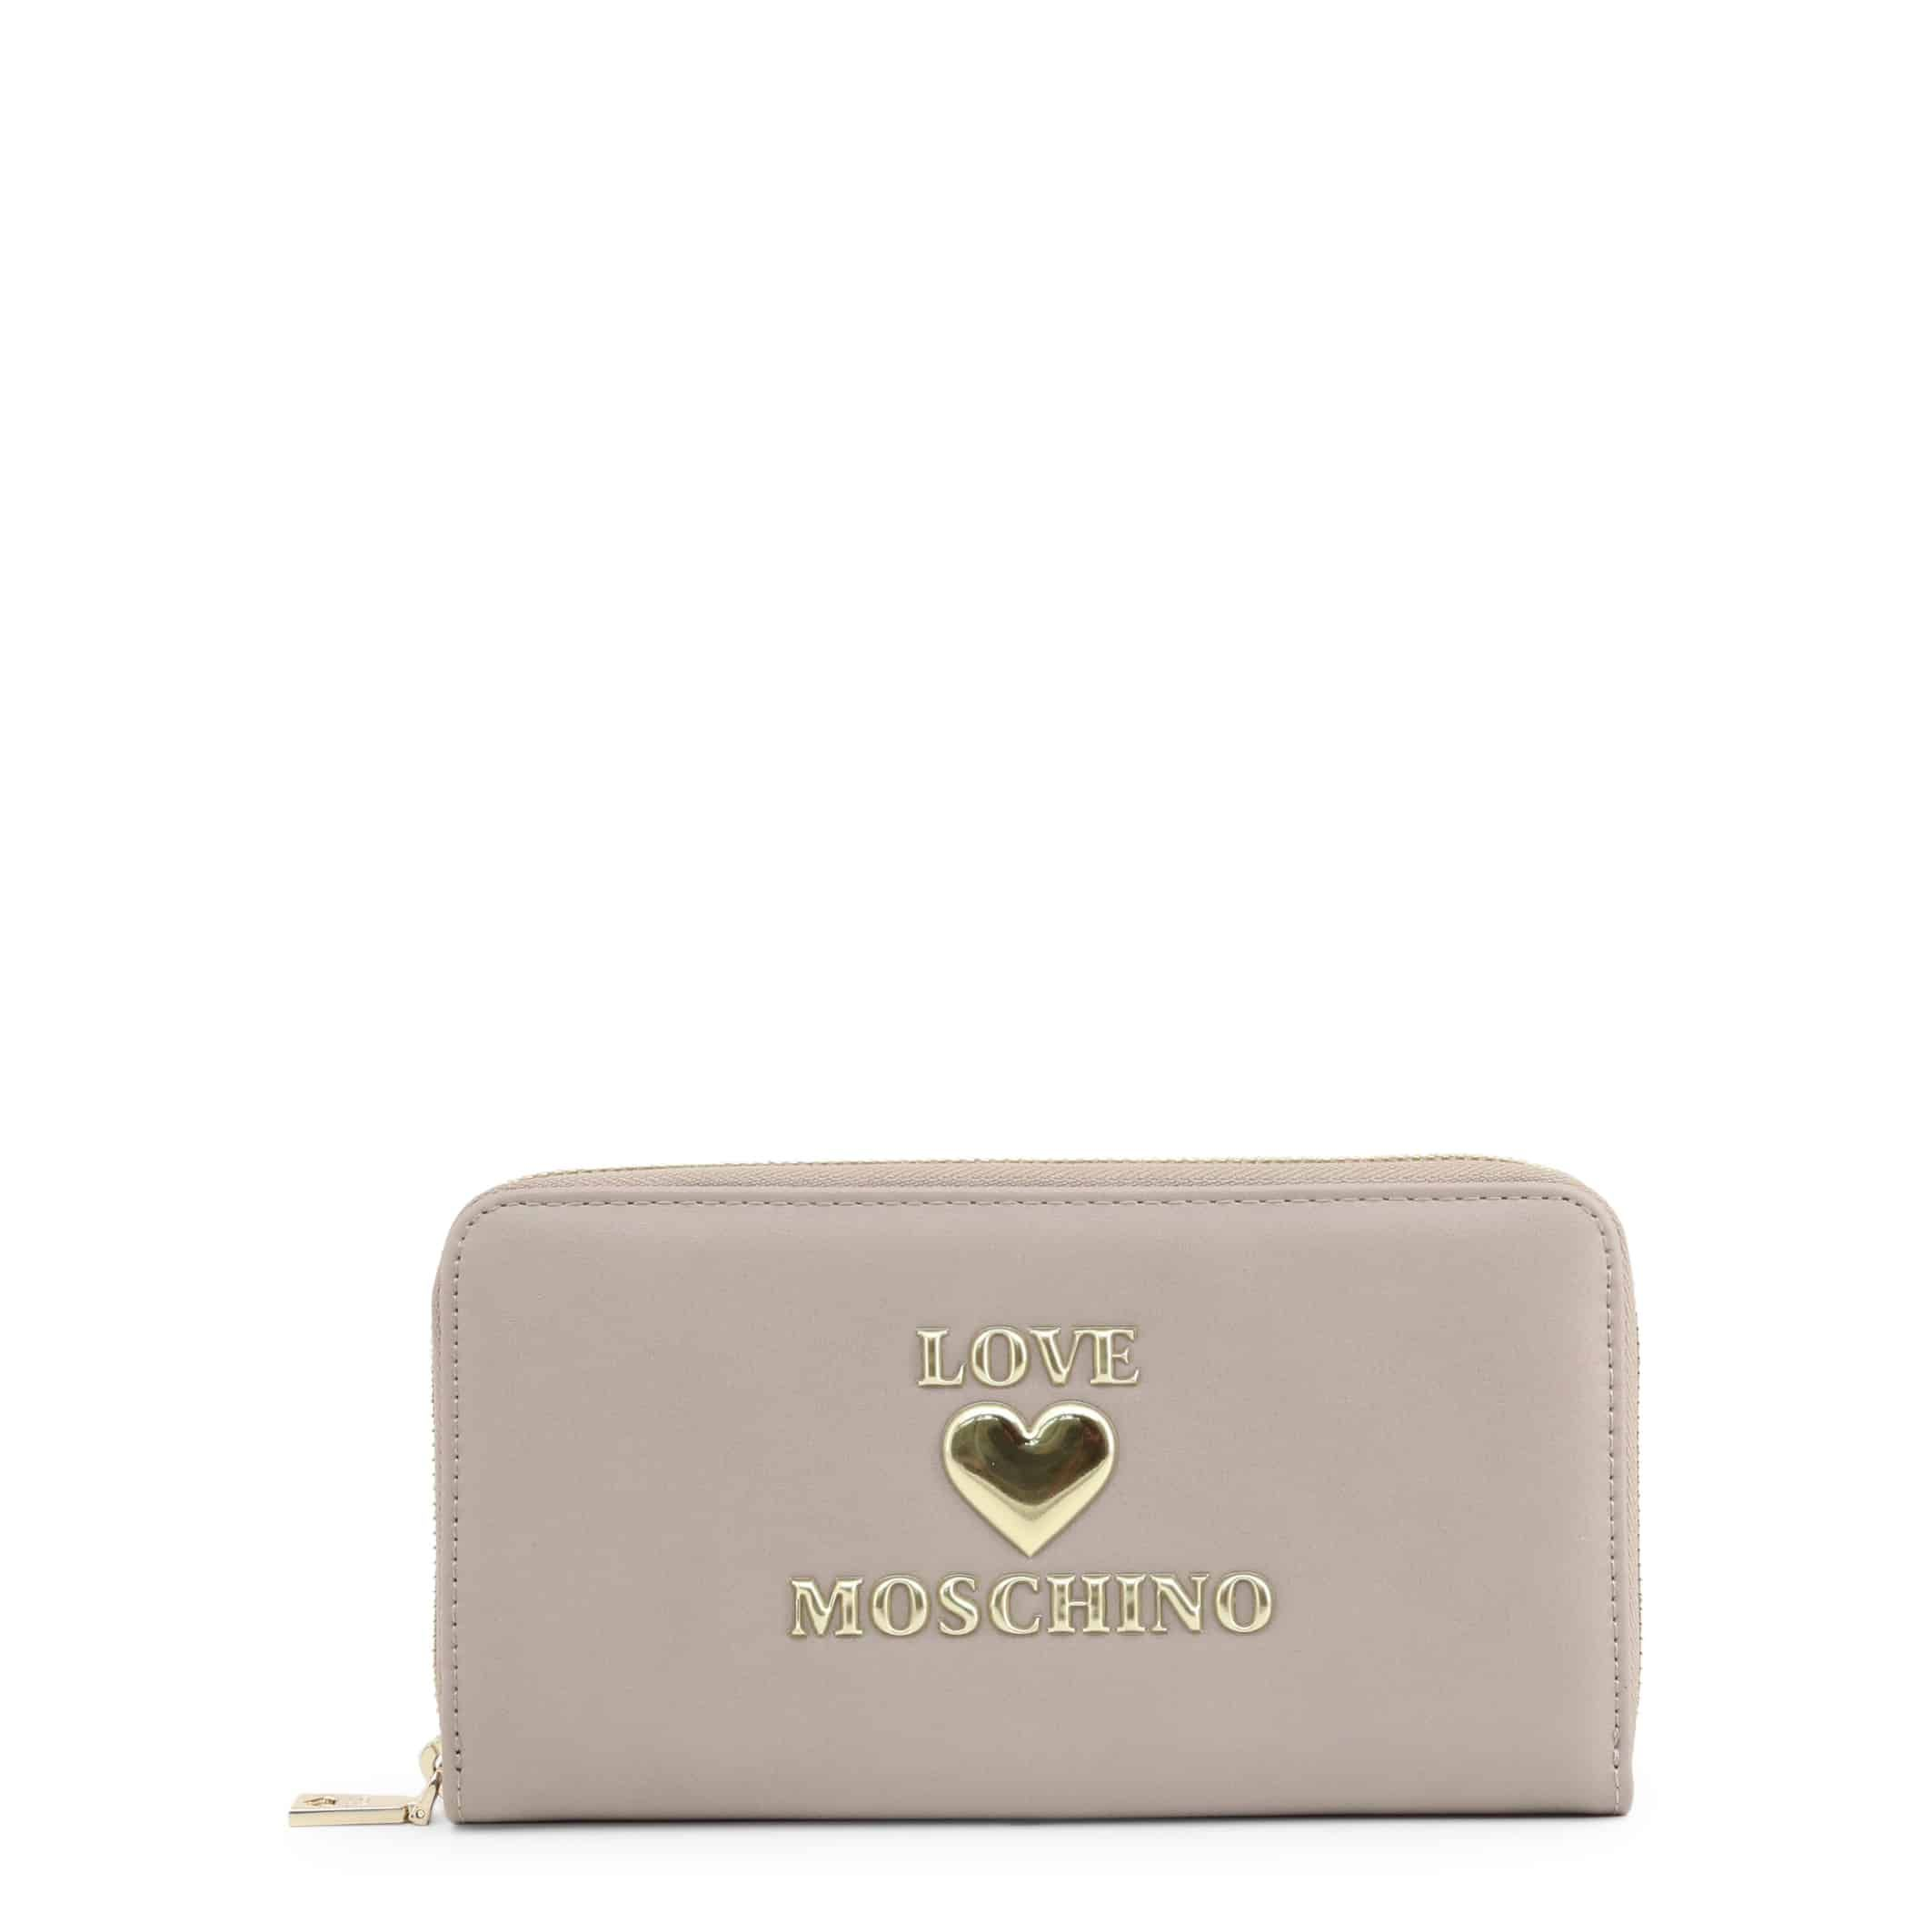 Portefeuilles Love Moschino – JC5606PP1BLE